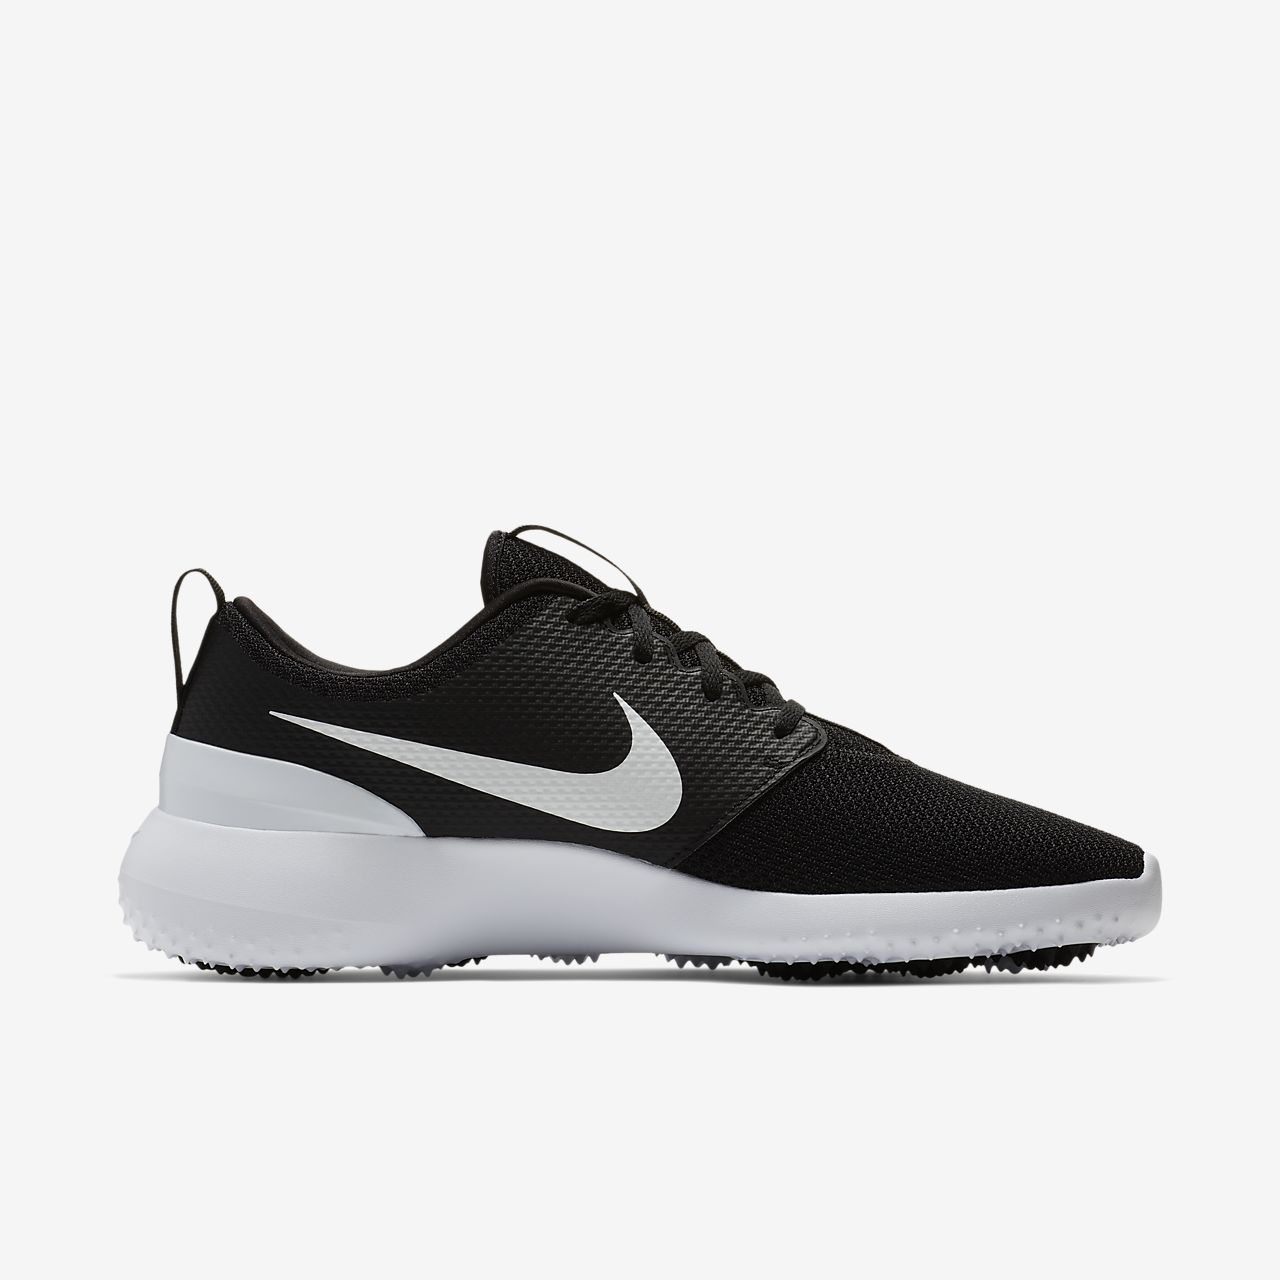 6146c007b4464 Nike Roshe G Men s Golf Shoe. Nike.com